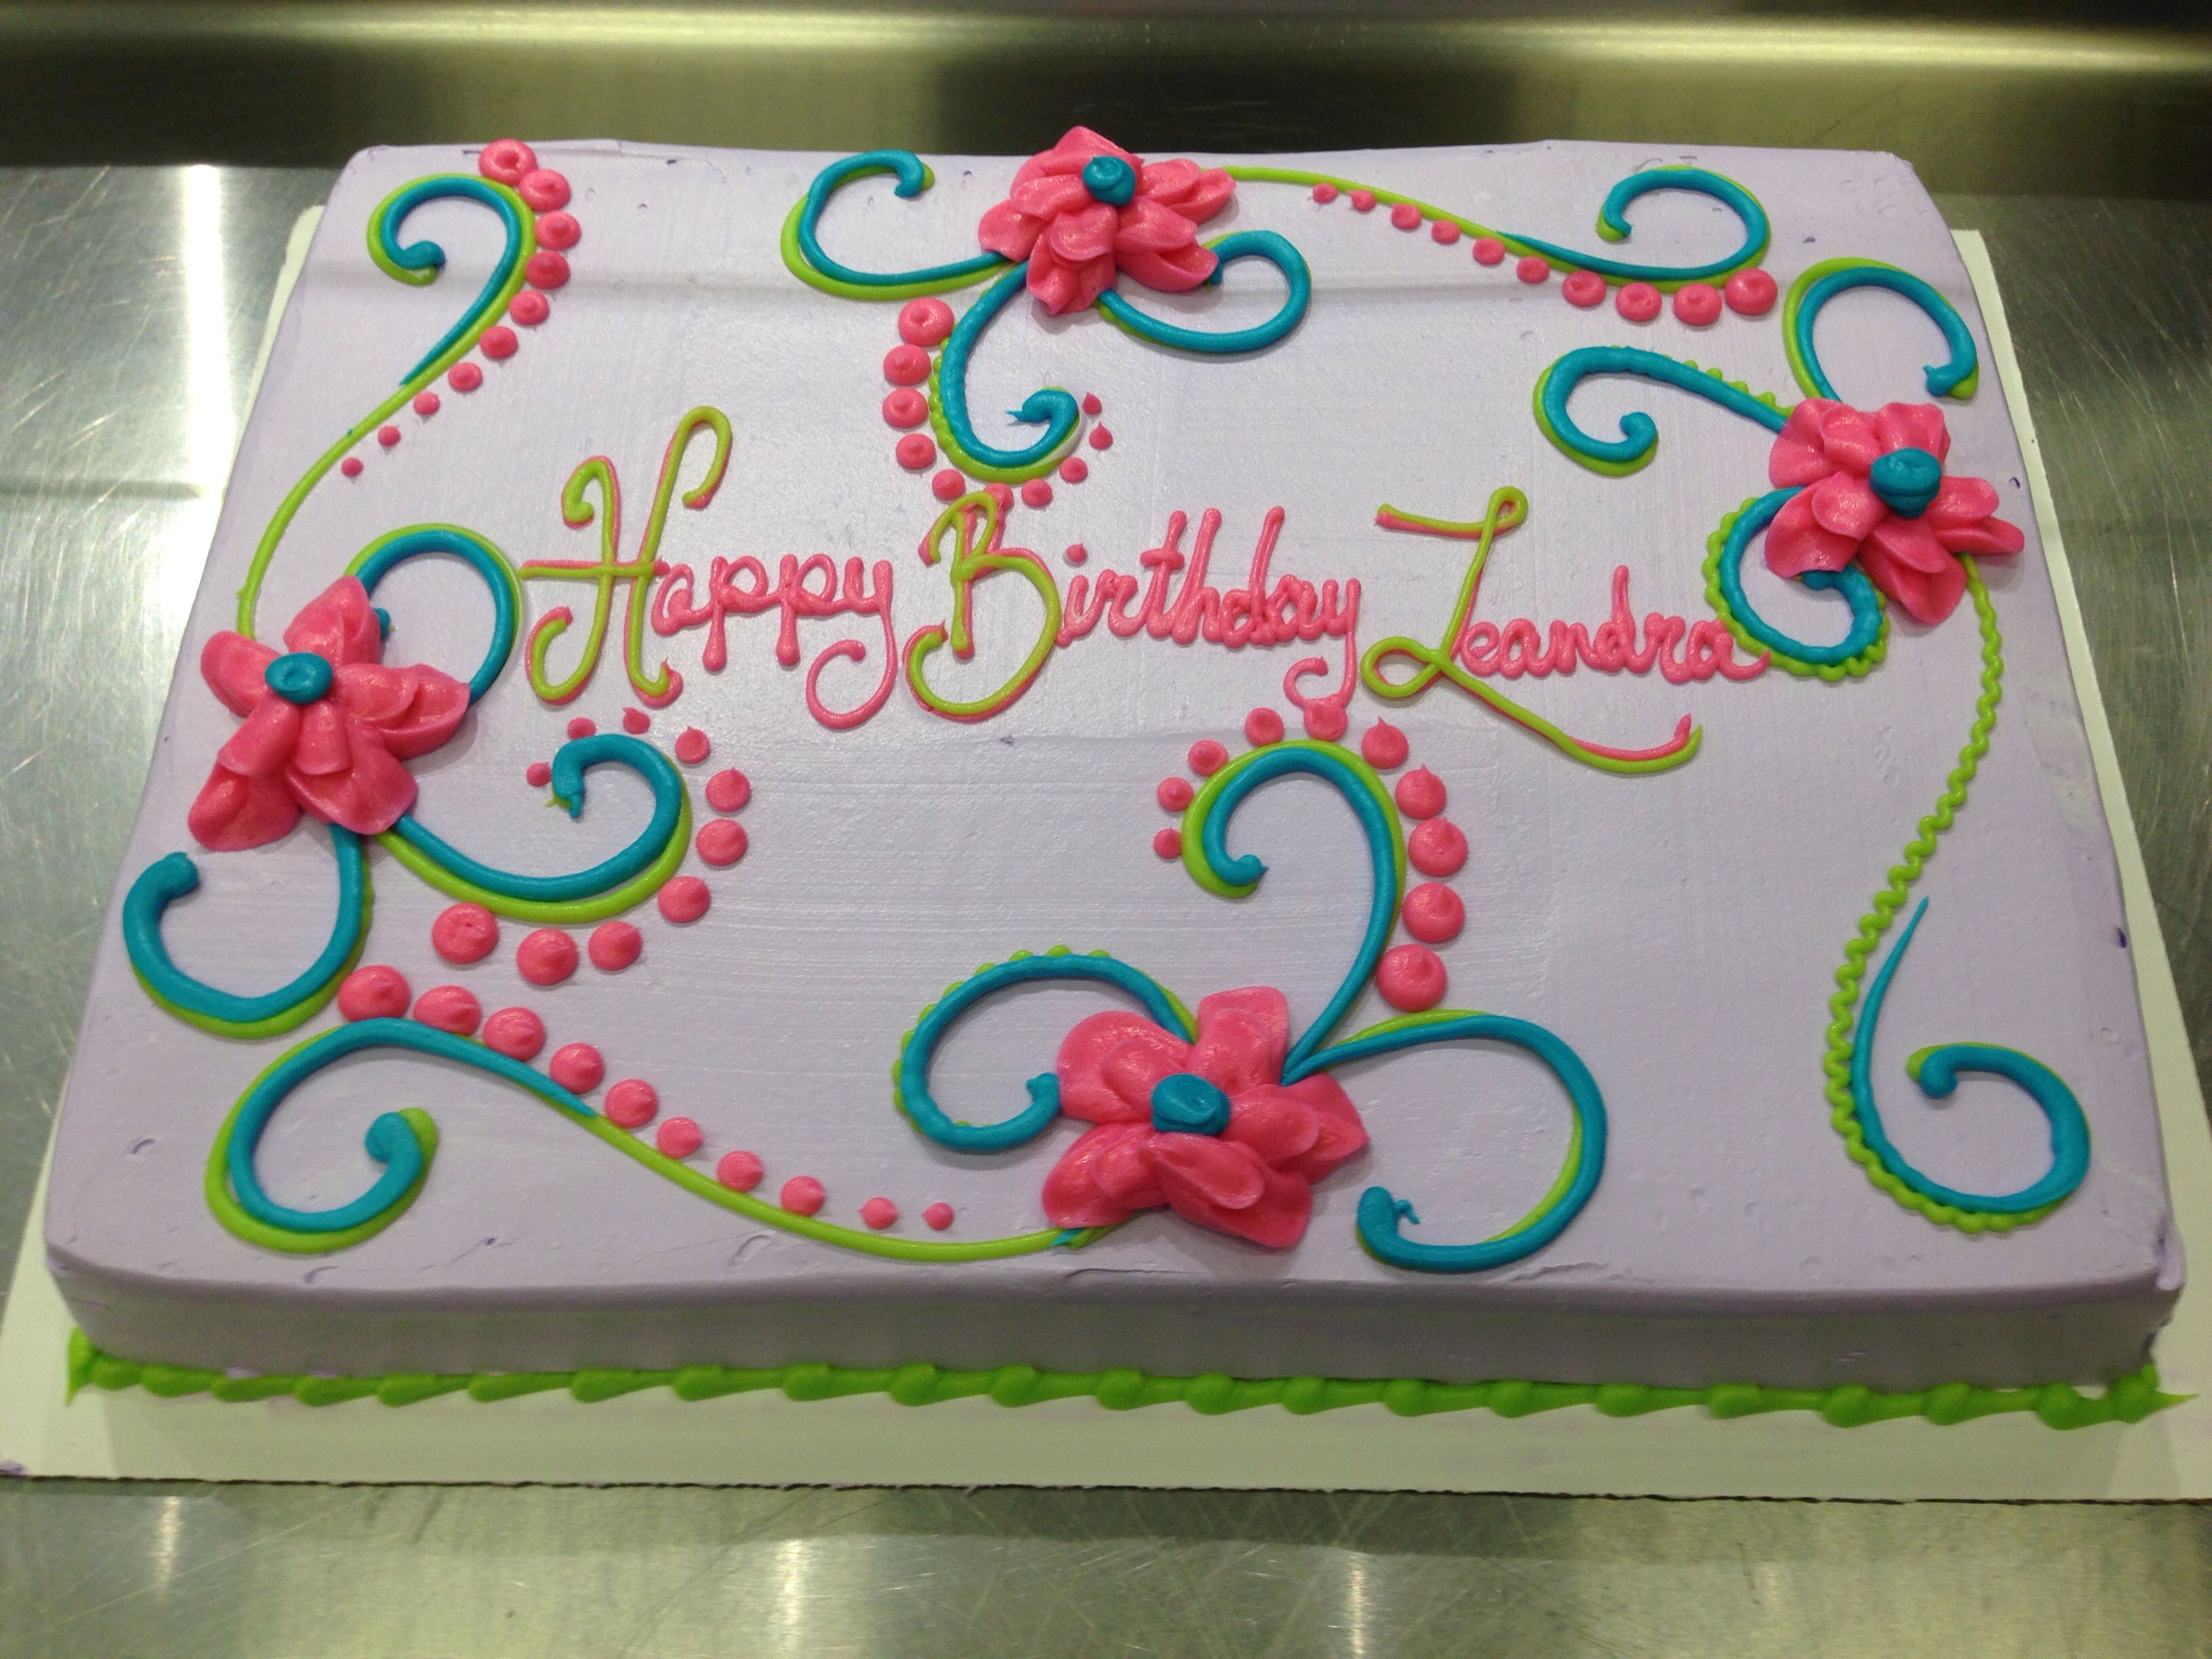 Birthday Cake Designs For Adults Scrolls And Flowers Girly Birthday Cake Cakes I Made Pinterest